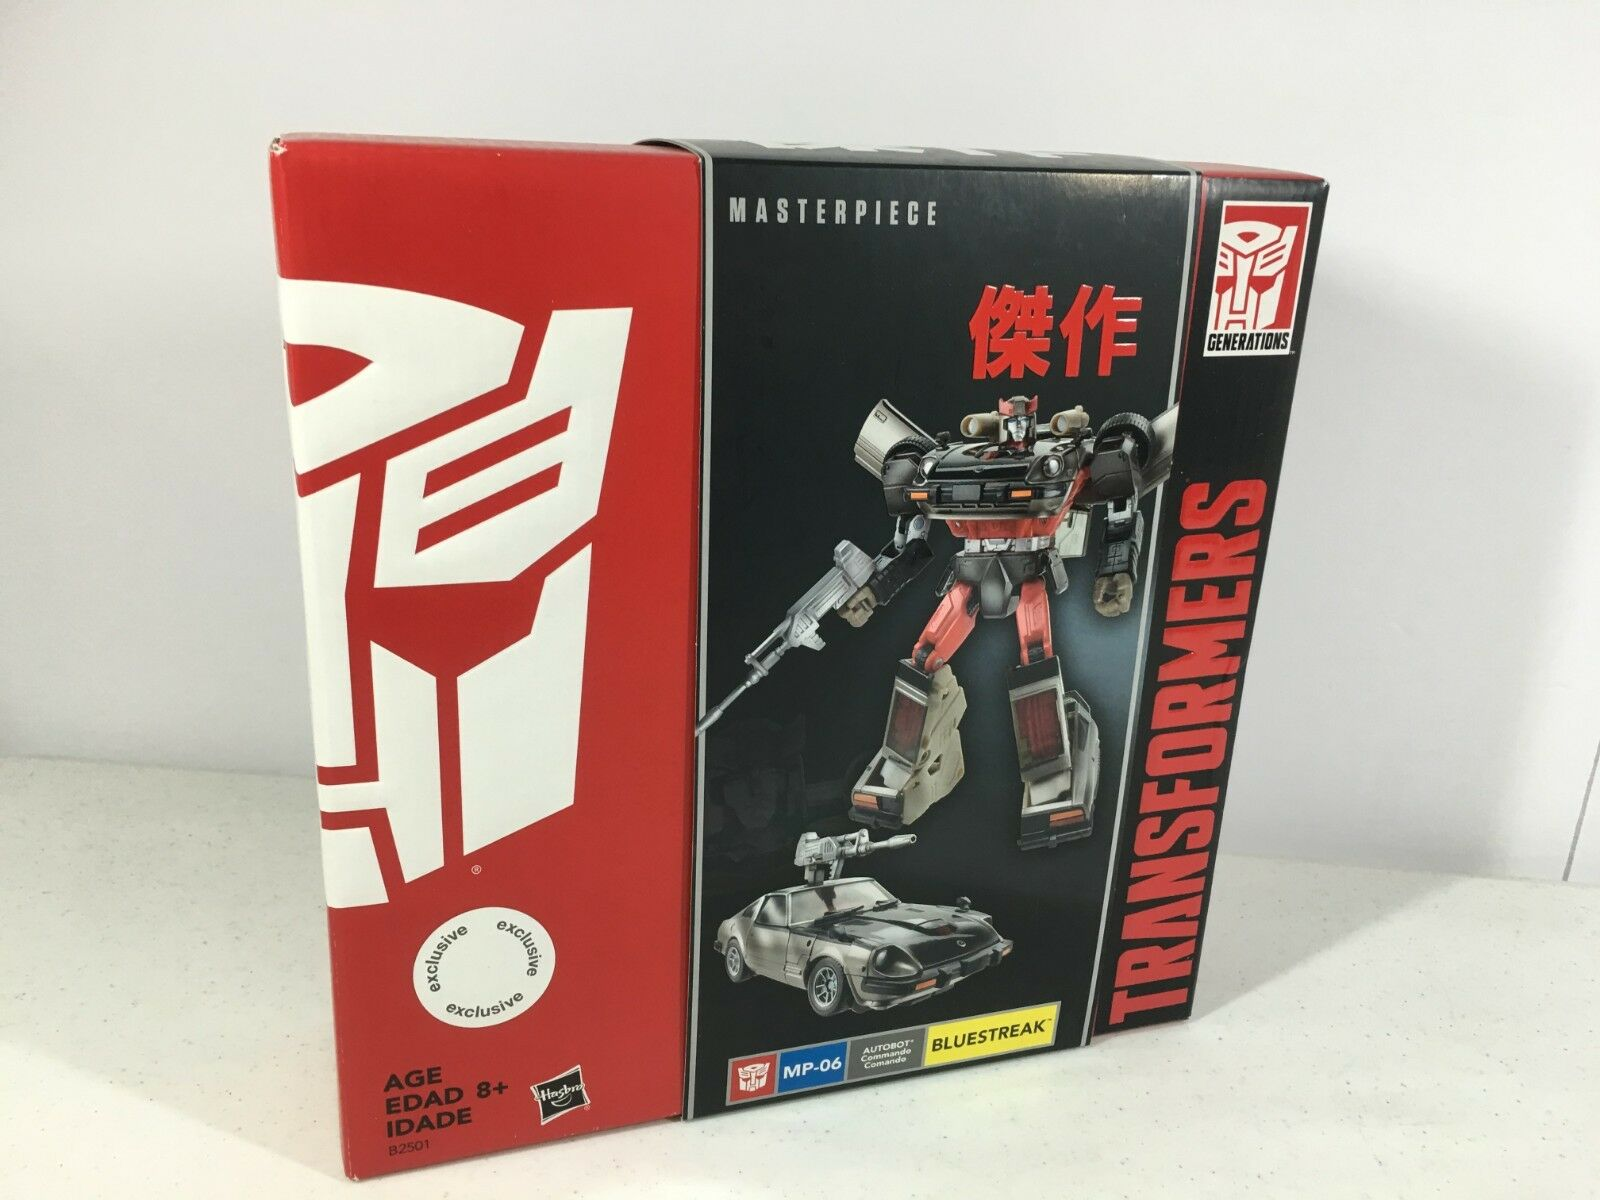 Transformers Masterpiece MP-06 bleustreak Authentique Tru